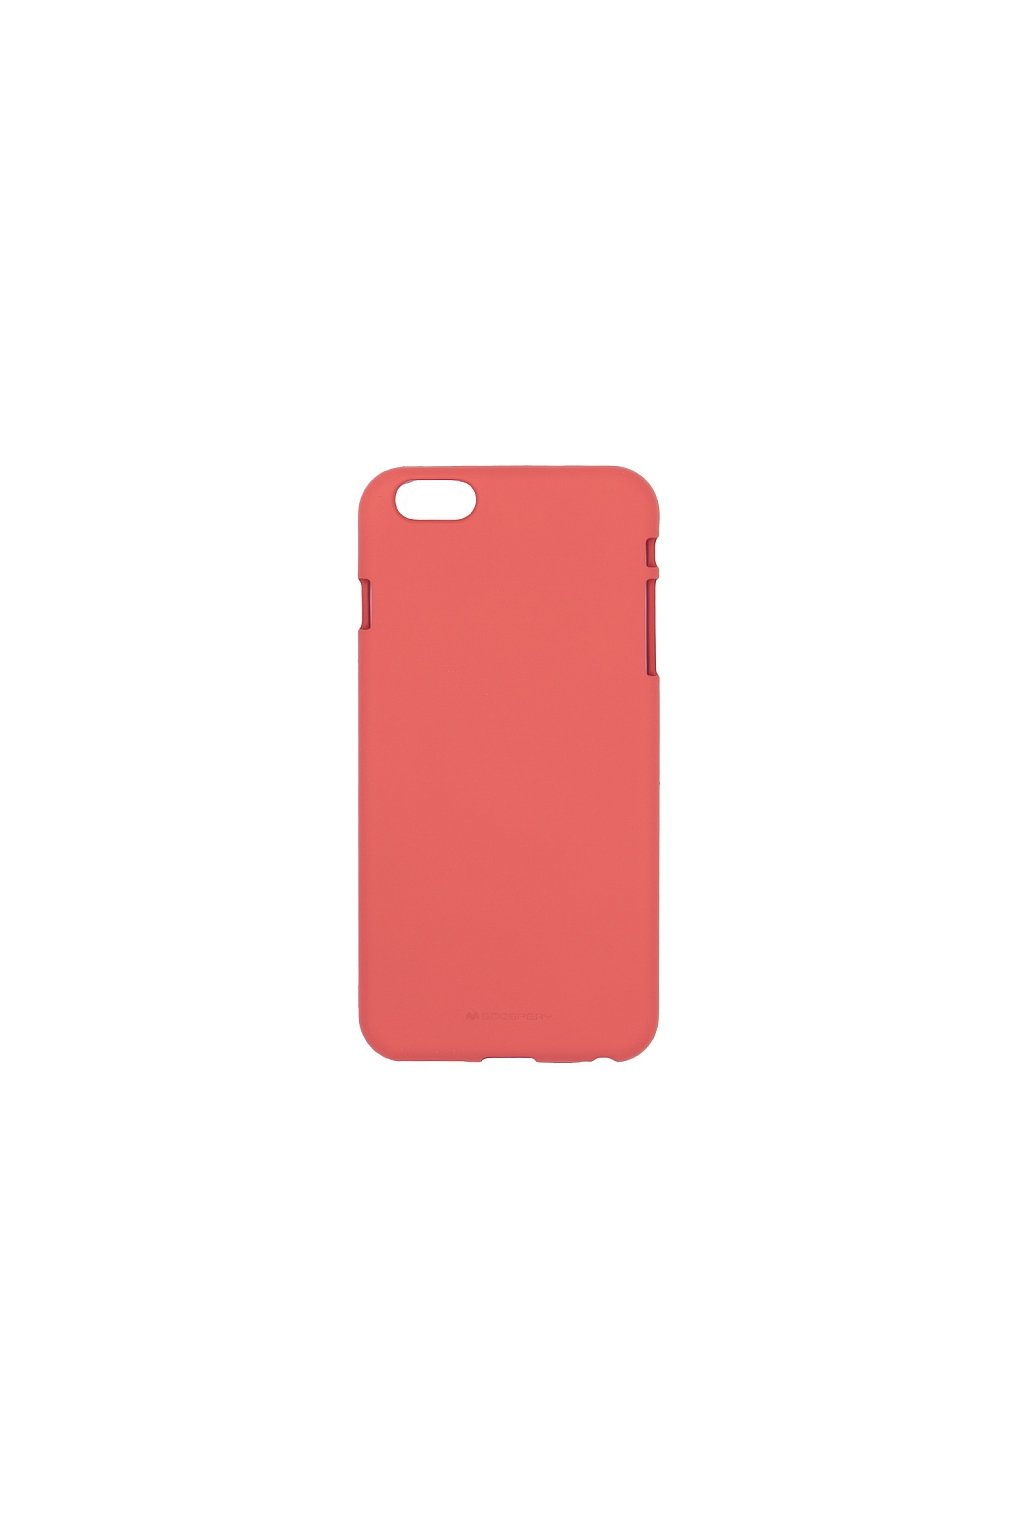 2141 ochrany kryt pro iphone 6 6s plus mercury soft feeling red